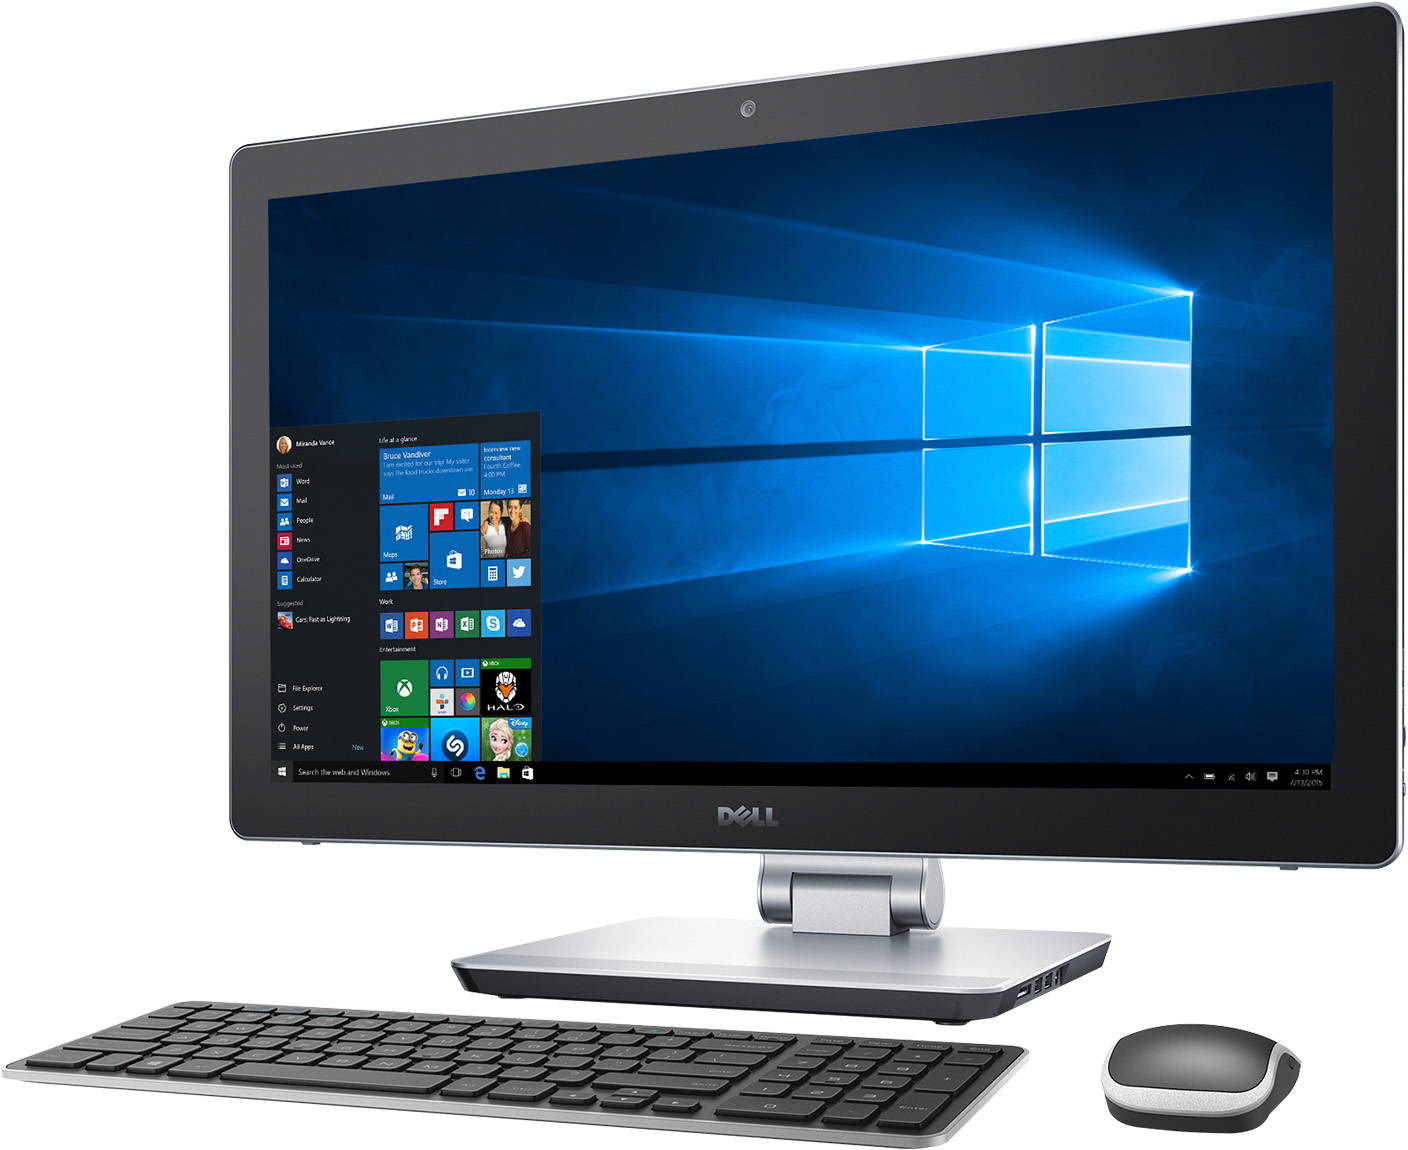 Dell Inspiron 24 7459 Signature Edition All-in-One